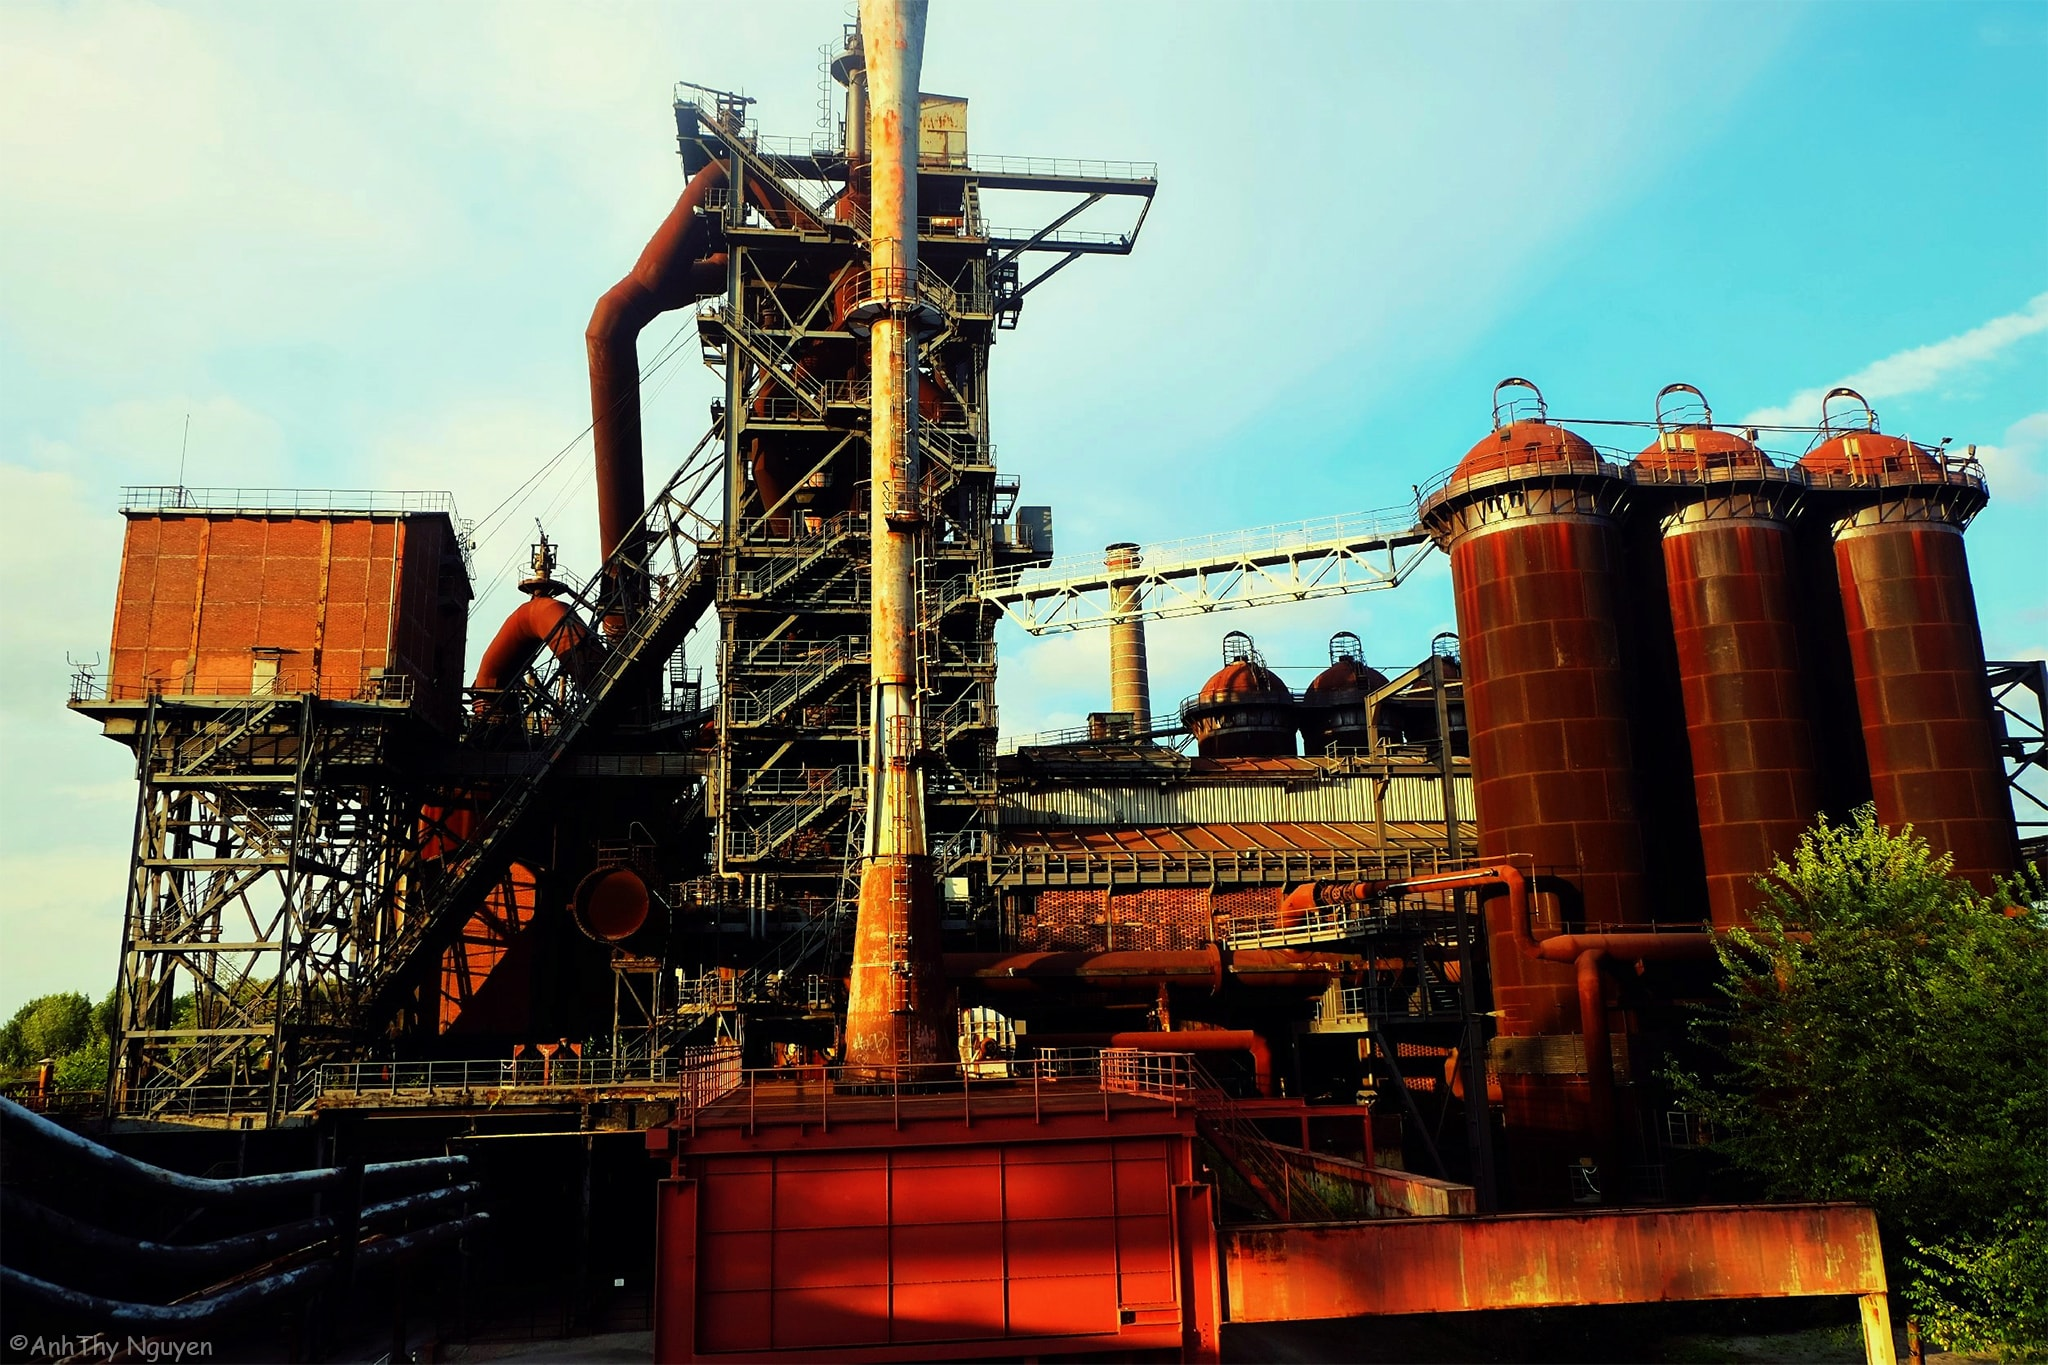 German Placeworthvisiting - North Duisburg Landscape Park - Meiderich Ironworks